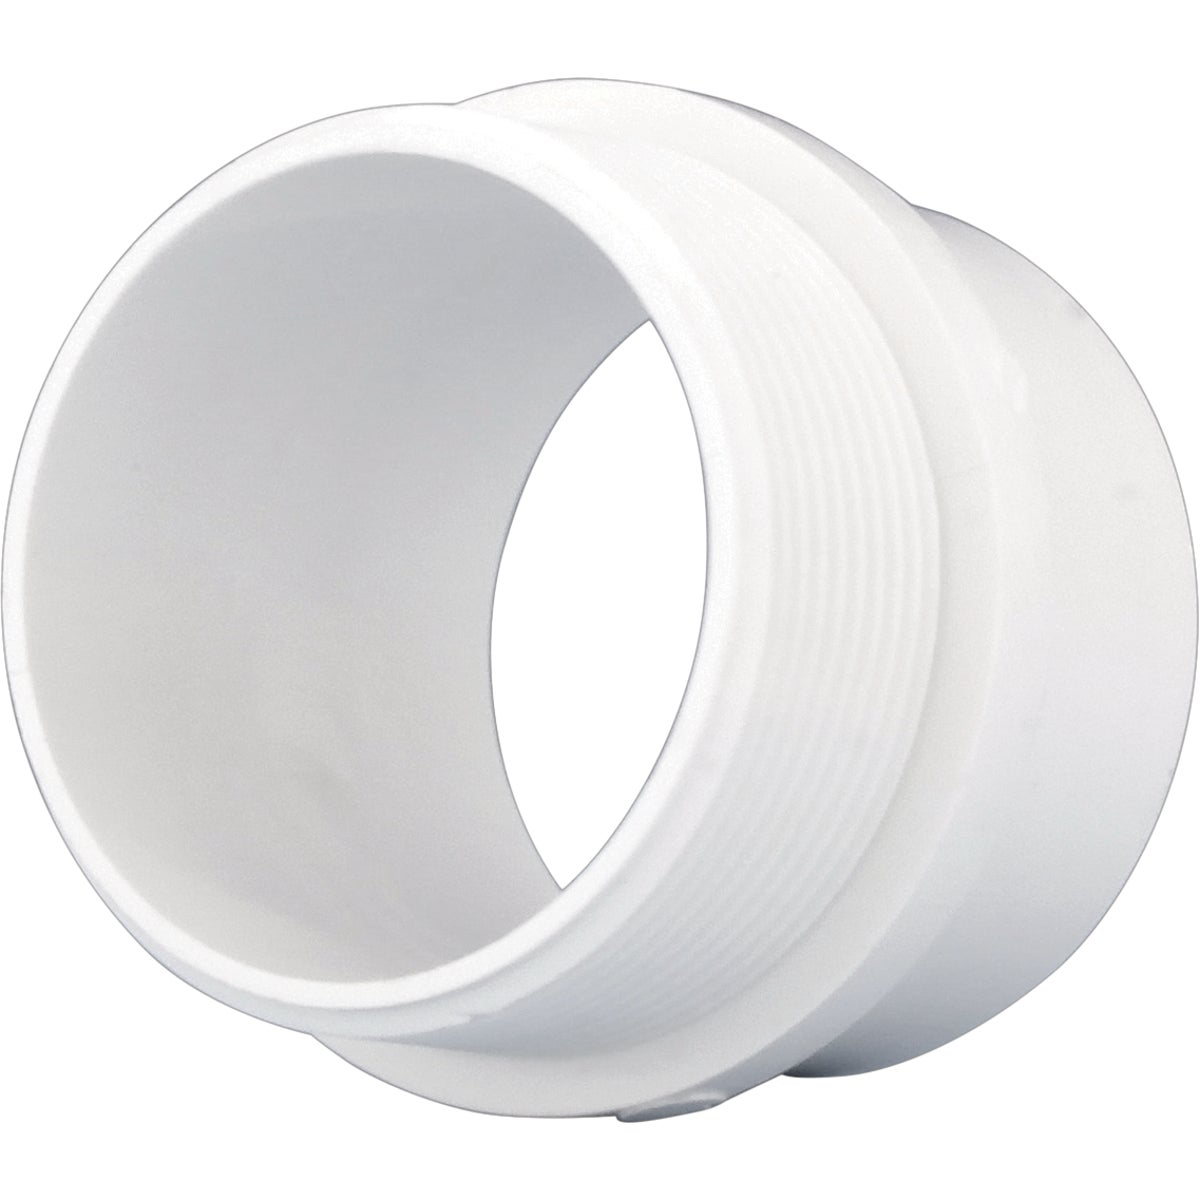 1-1/2X1-1/4 M ADAPTER - 72411 by Genova Inc  Pvc Dwv